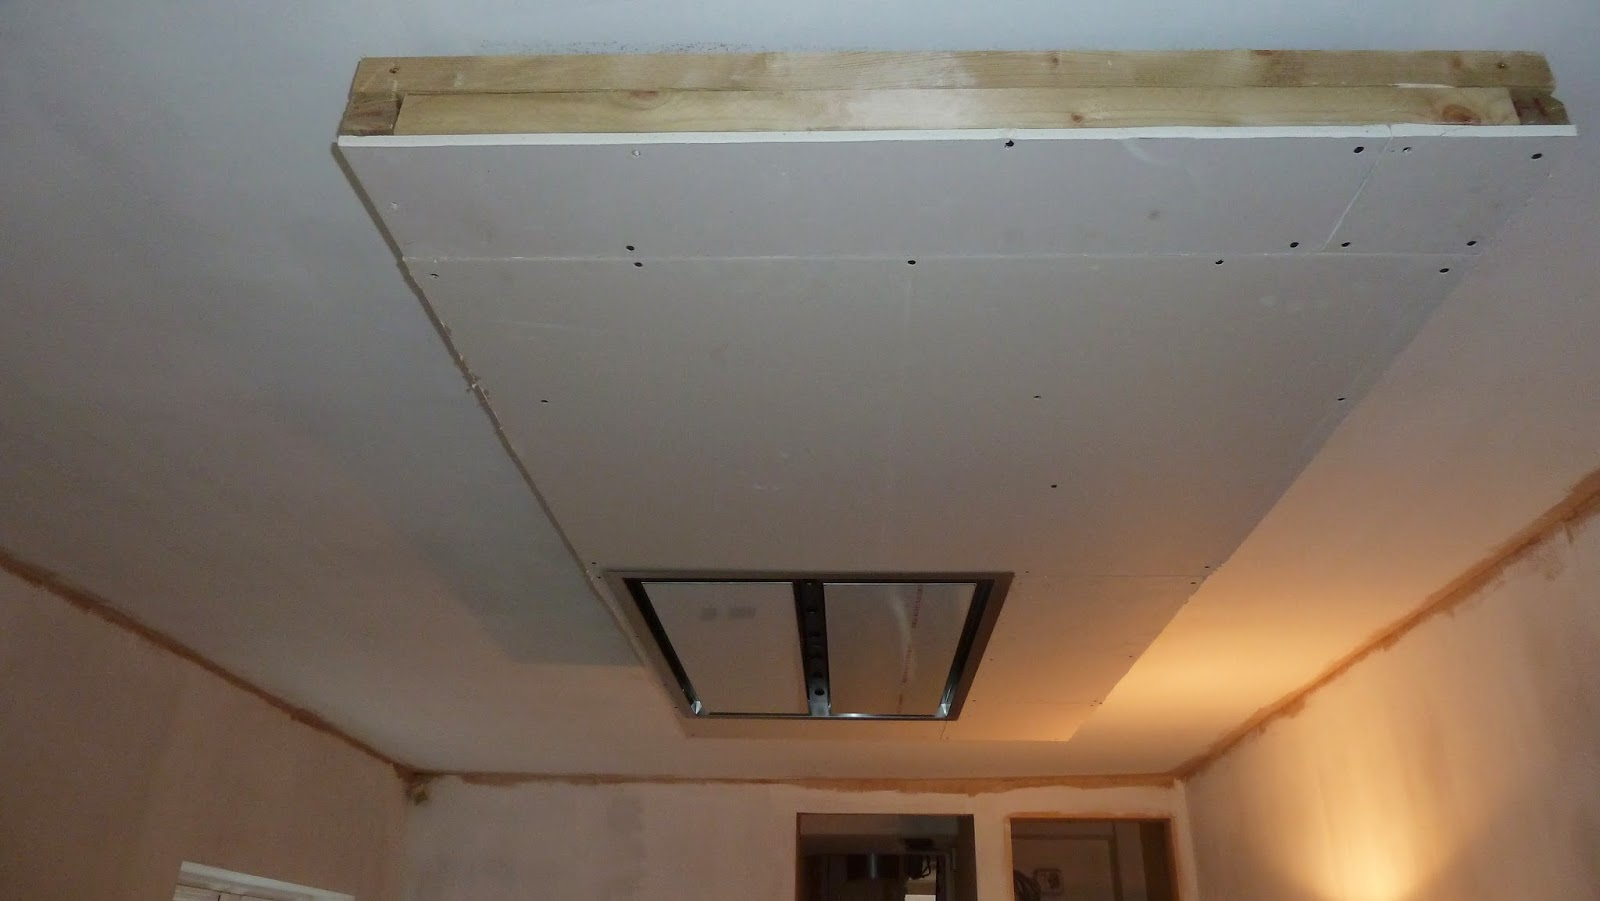 The ceiling of plasterboard in the kitchen: design and design options 79